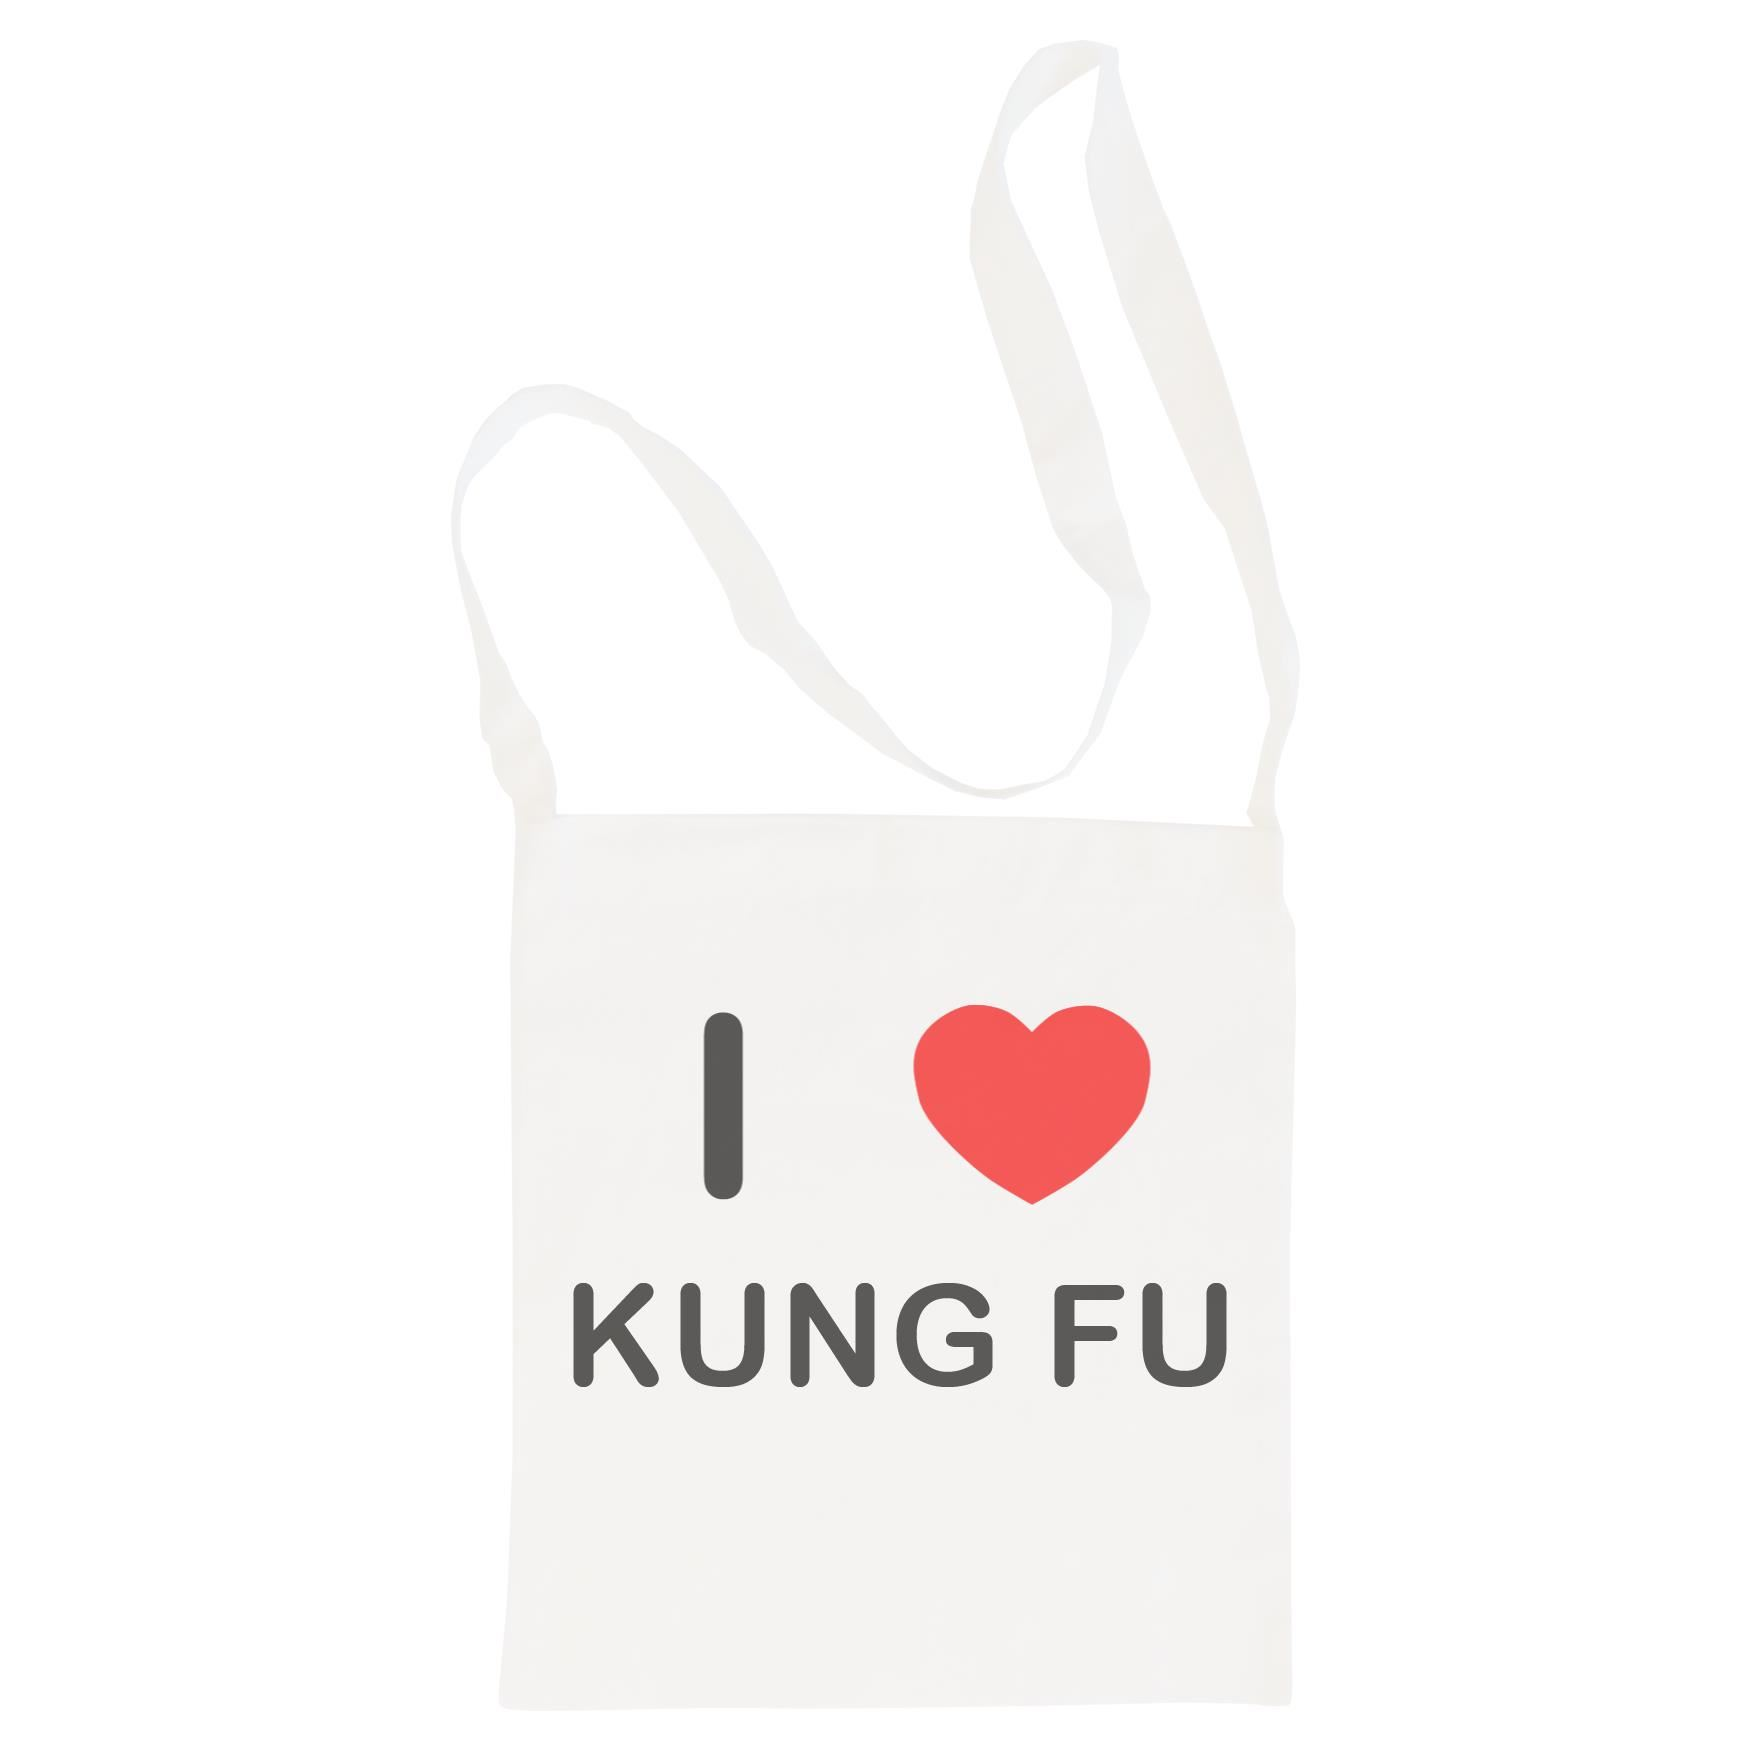 I Love Kung Fu - Cotton Bag | Size choice Tote, Shopper or Sling